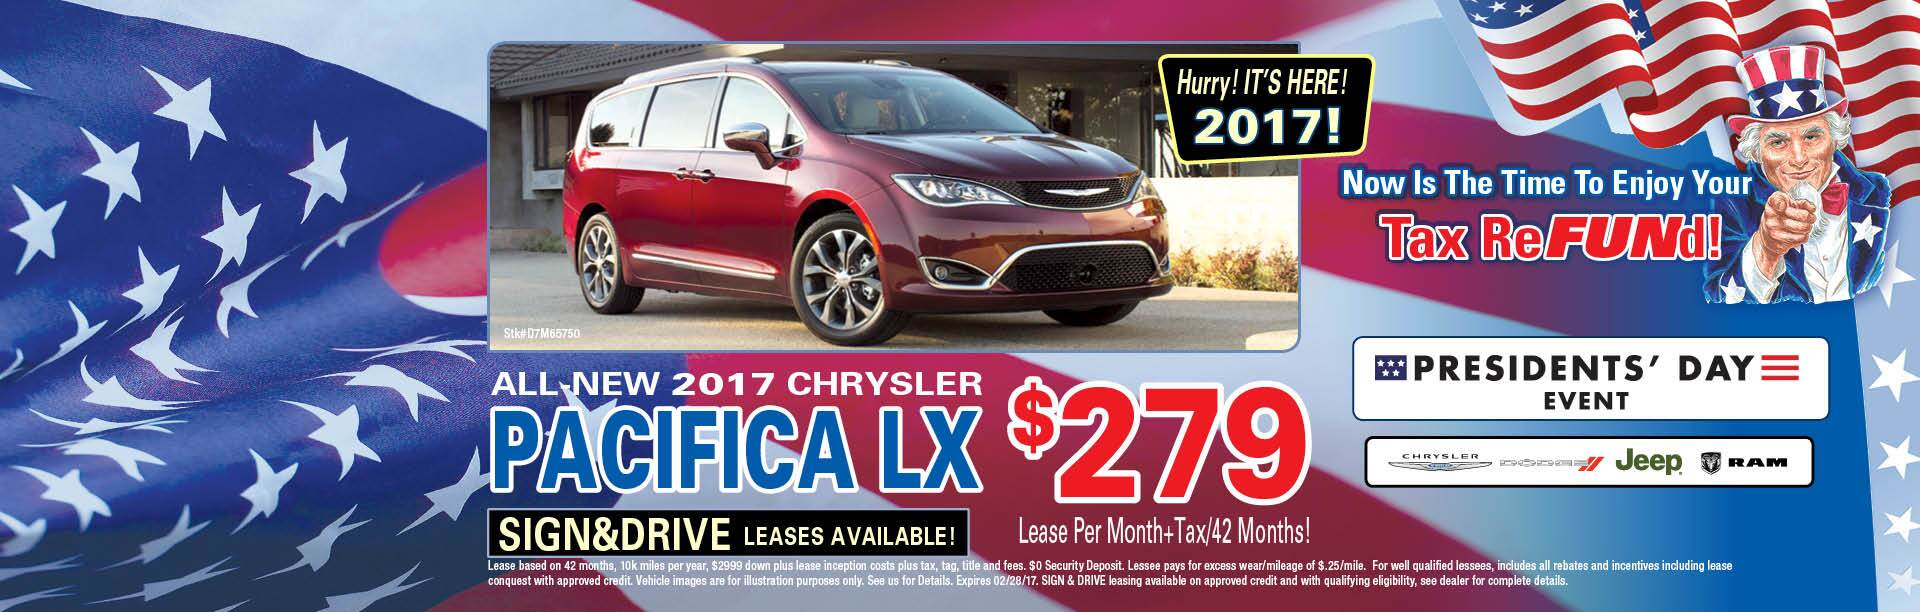 2017 Pacifica LX